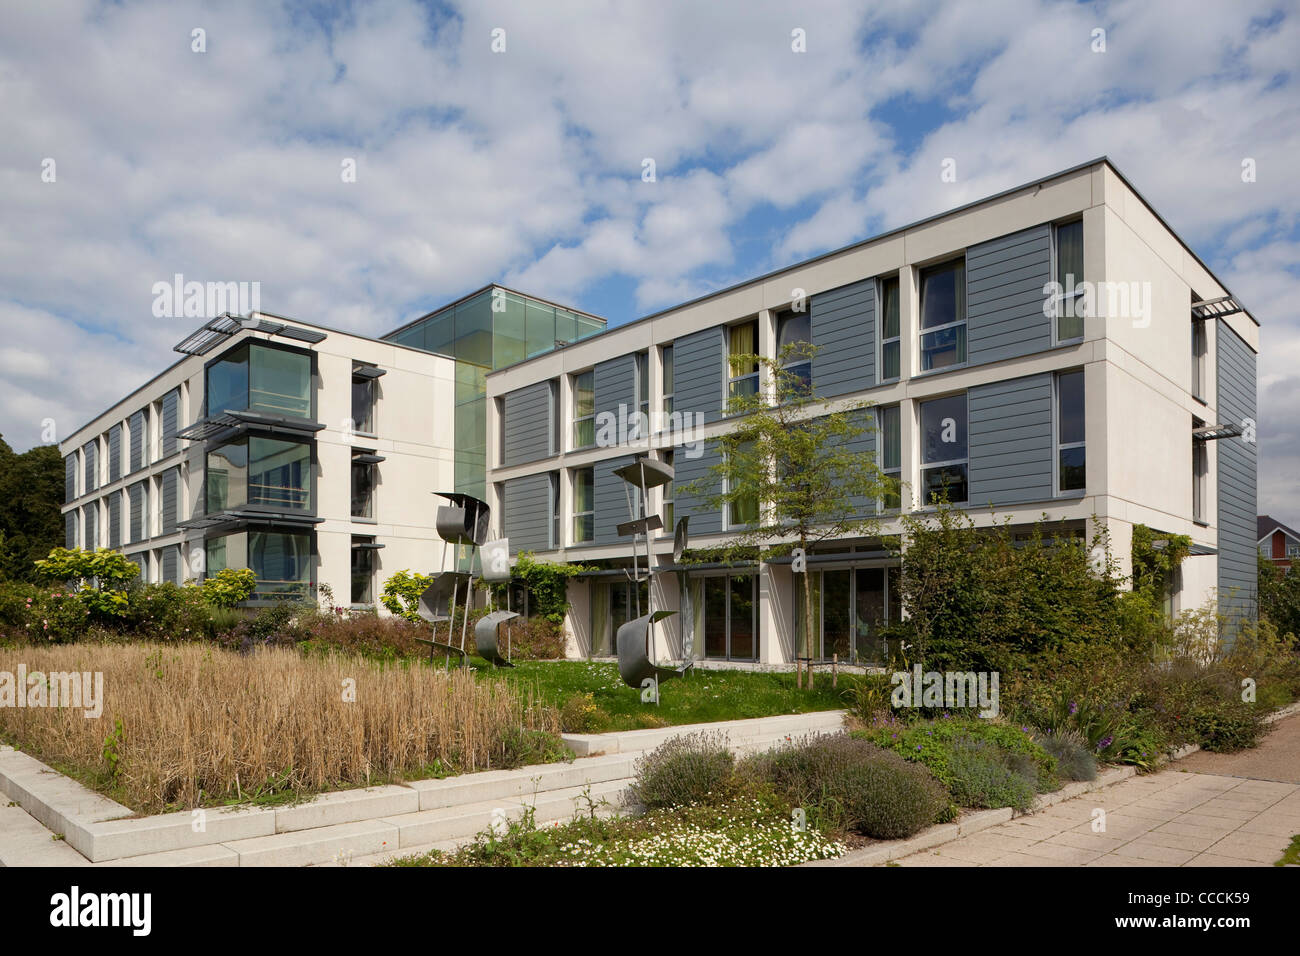 Murray edwards college new hall cambridge canning and for New house hall